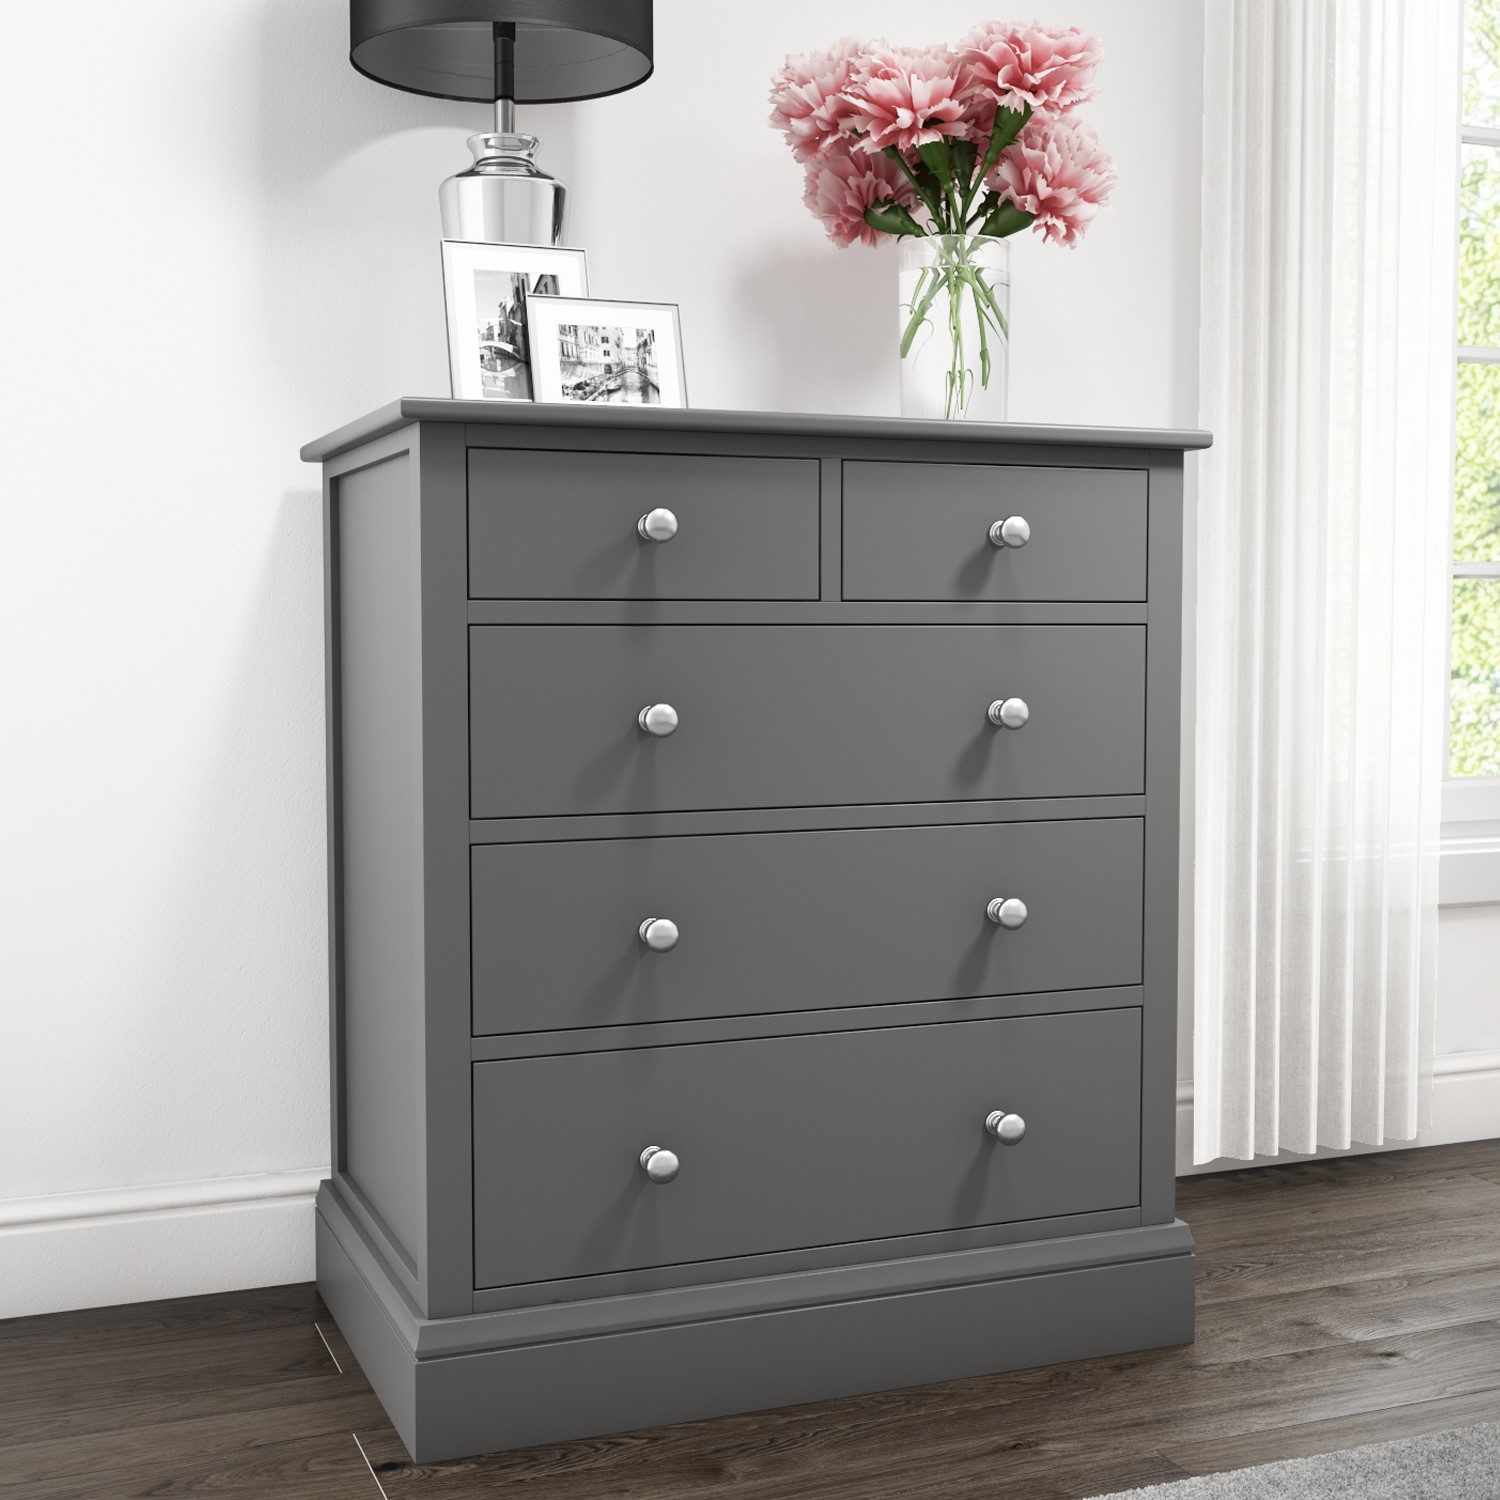 Bedroom Furniture Finch 2 3 Chest Of Drawers In Light Grey Chest